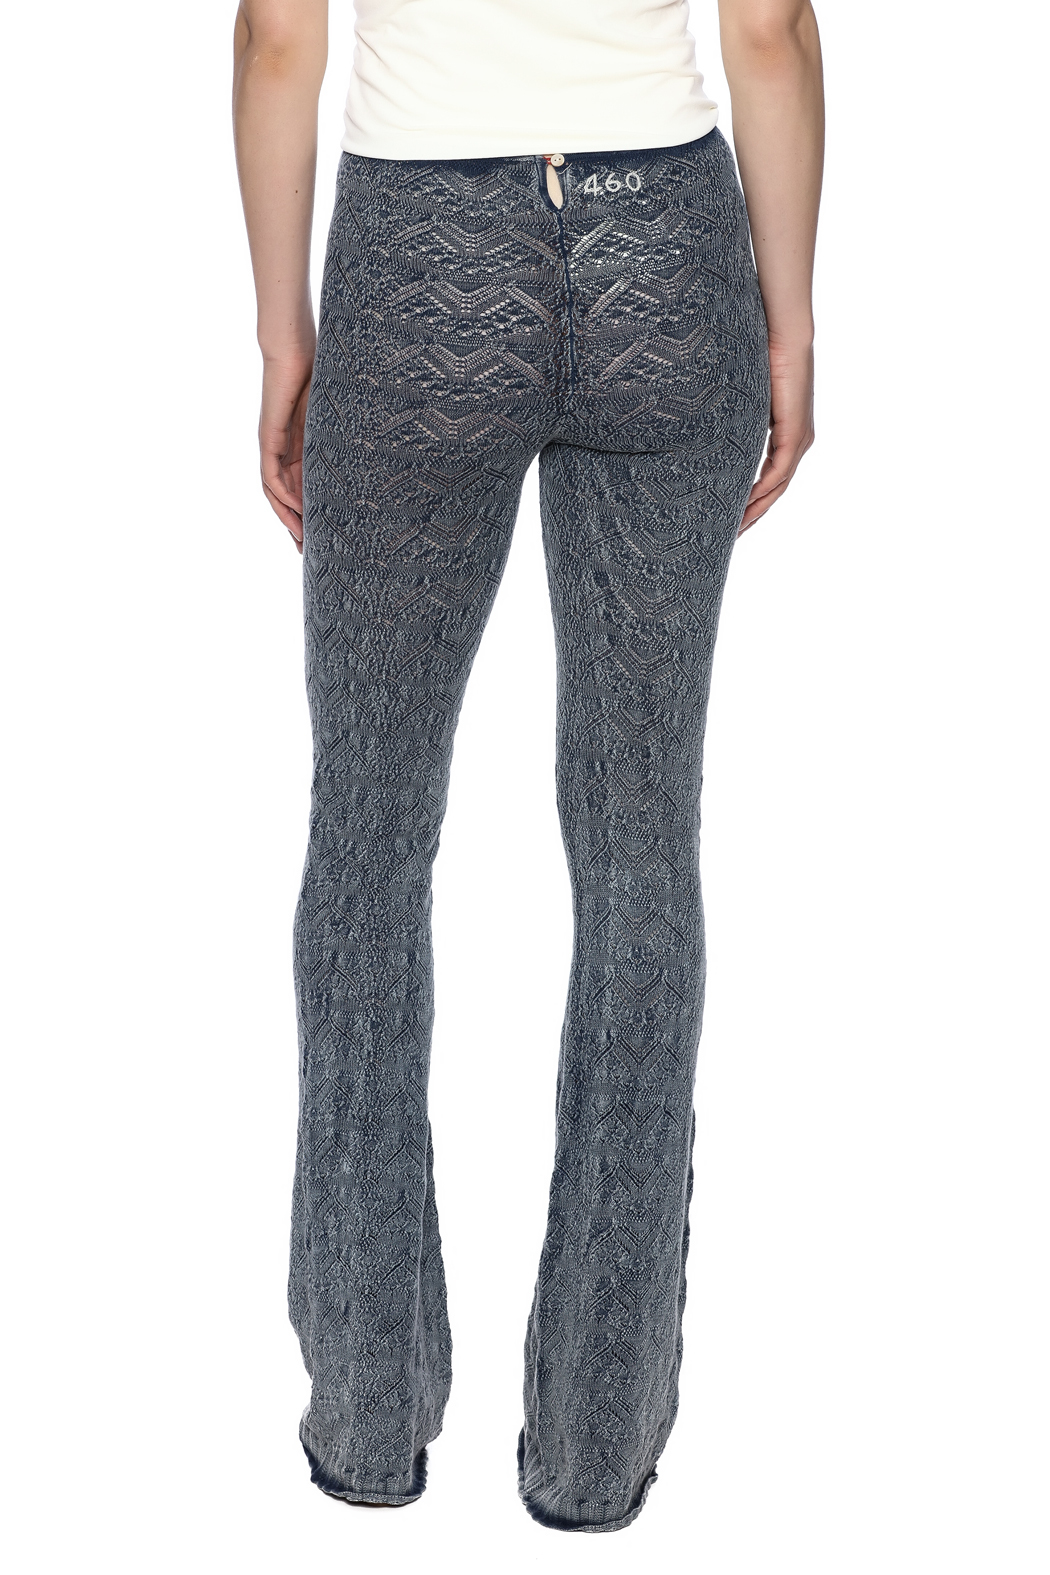 Odd Molly Knit Indigo Bootcut Legging - Back Cropped Image